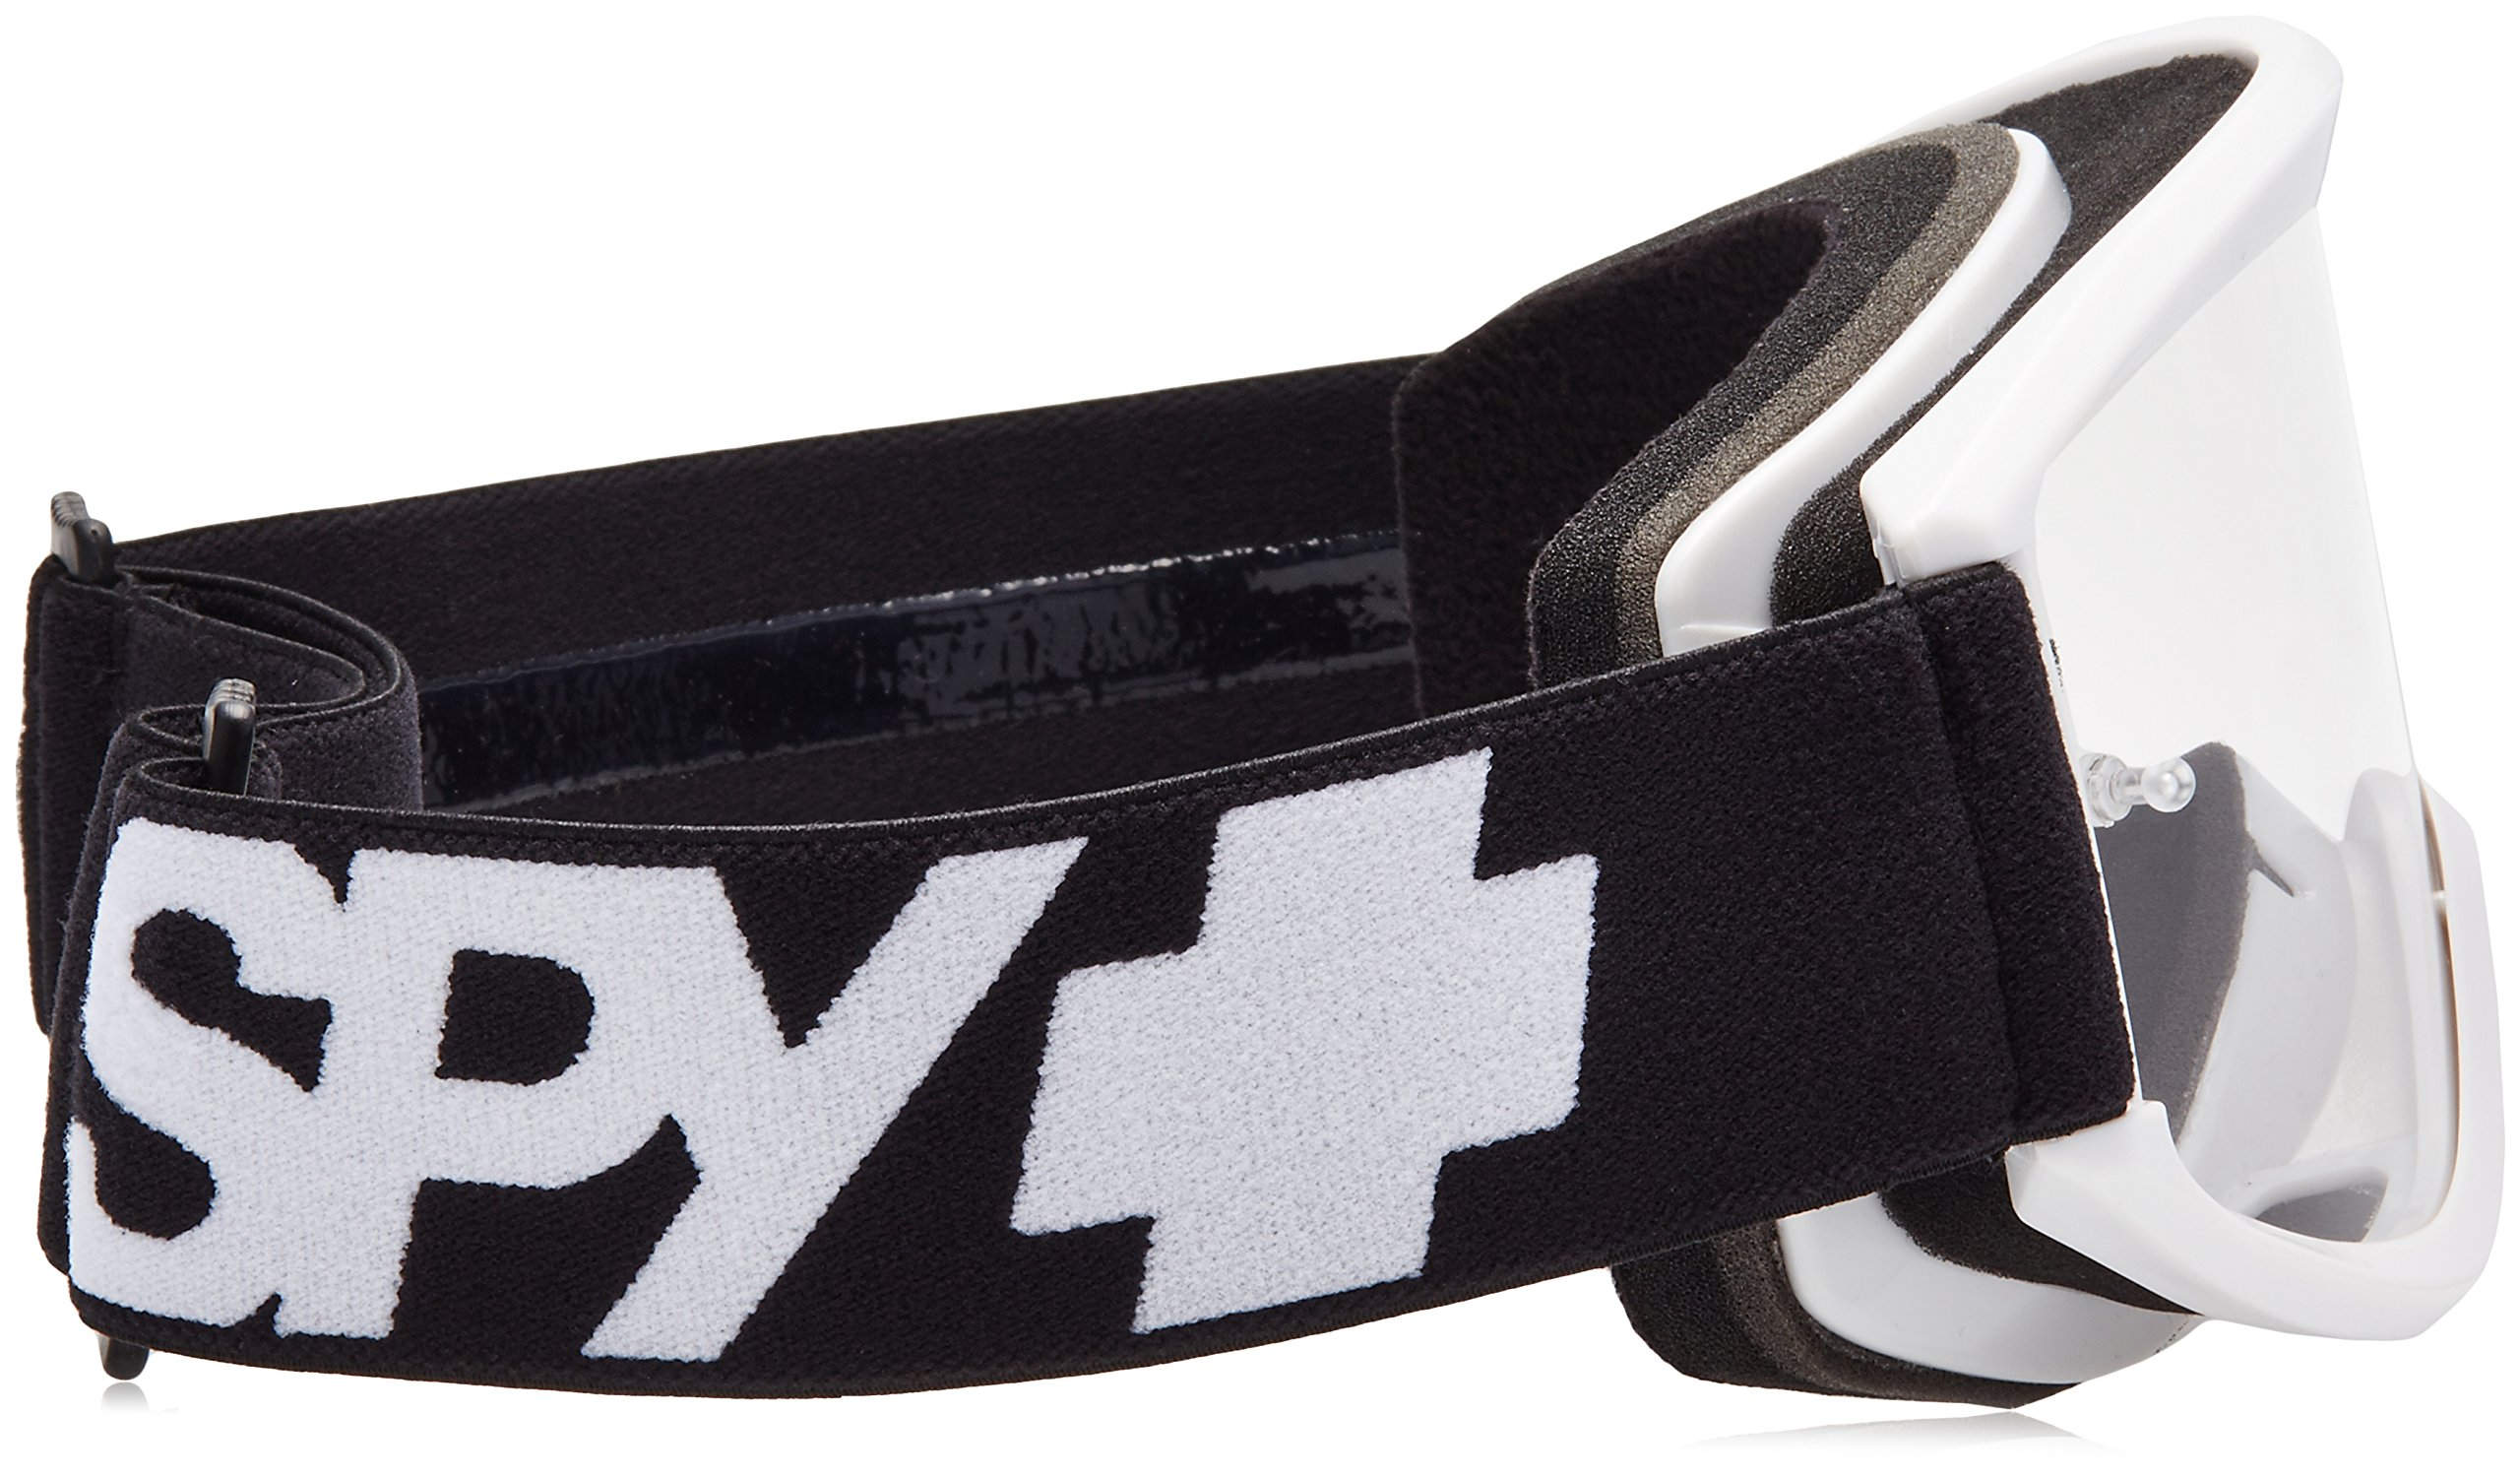 SPY Optic Breakaway Motocross Goggles | Midsize Perfect for All Face Sizes by Spy (Image #3)